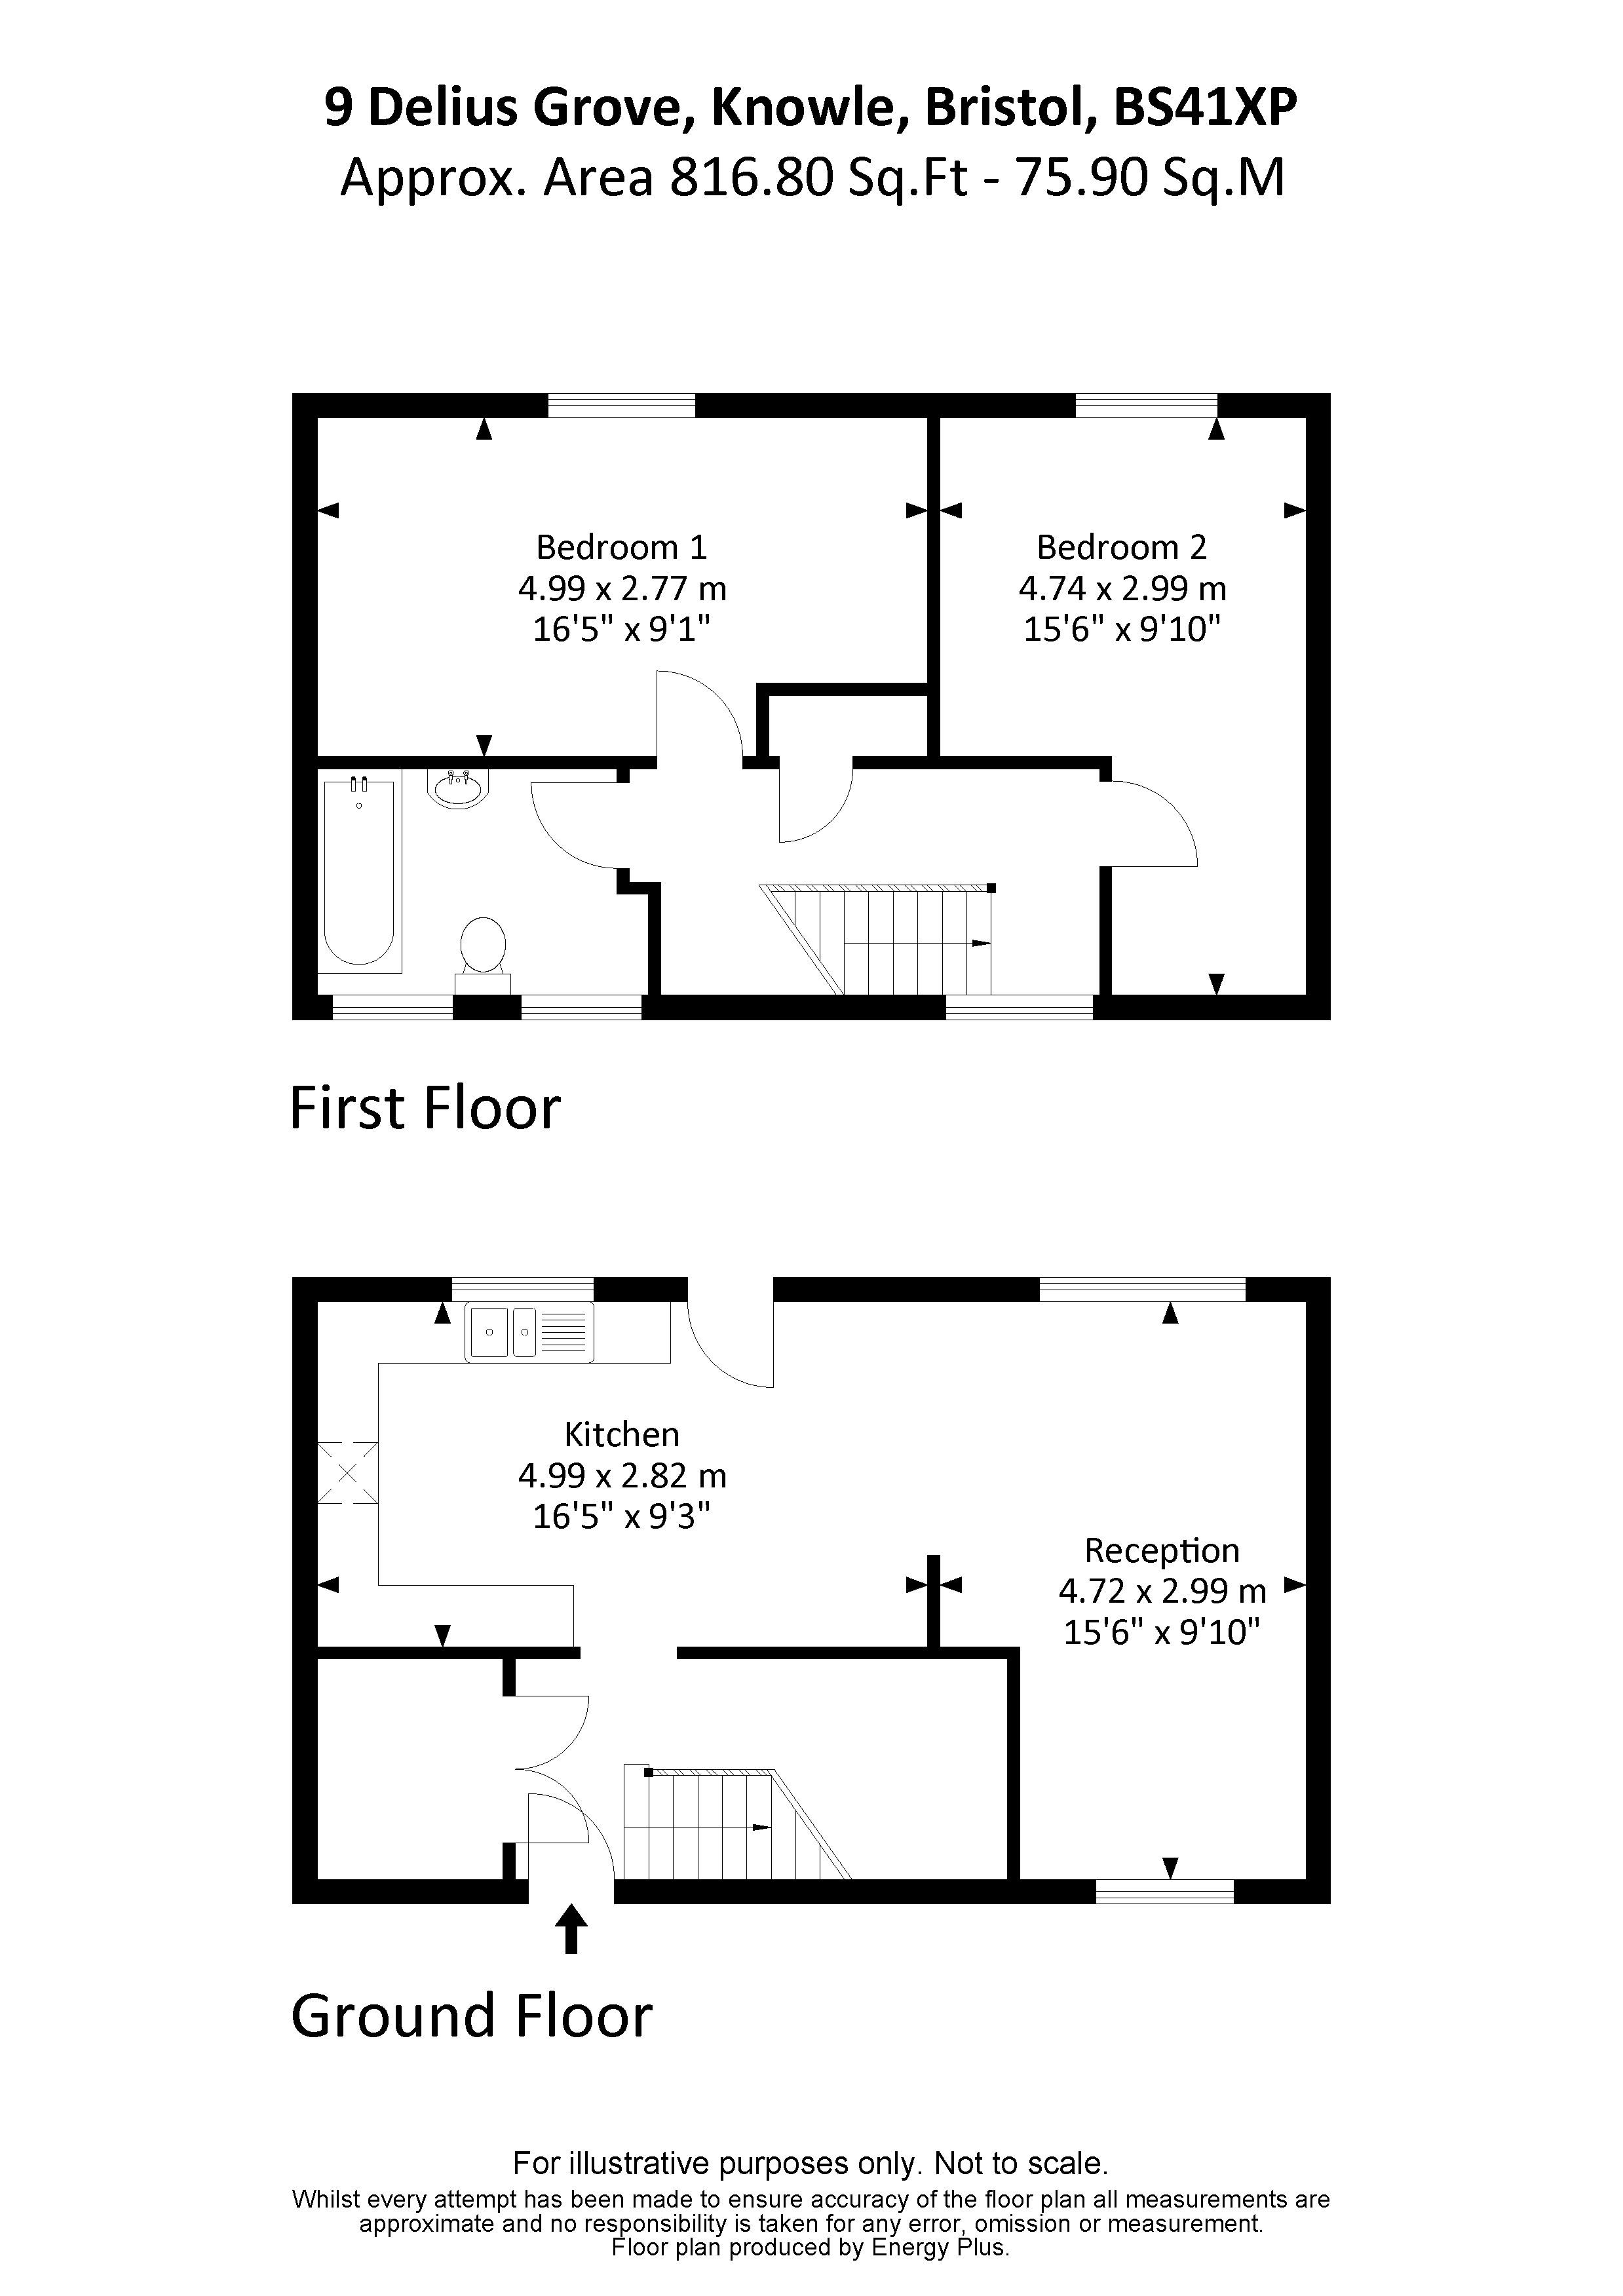 Floorplan for the property 2 bed House for sale on Delius Grove - 1